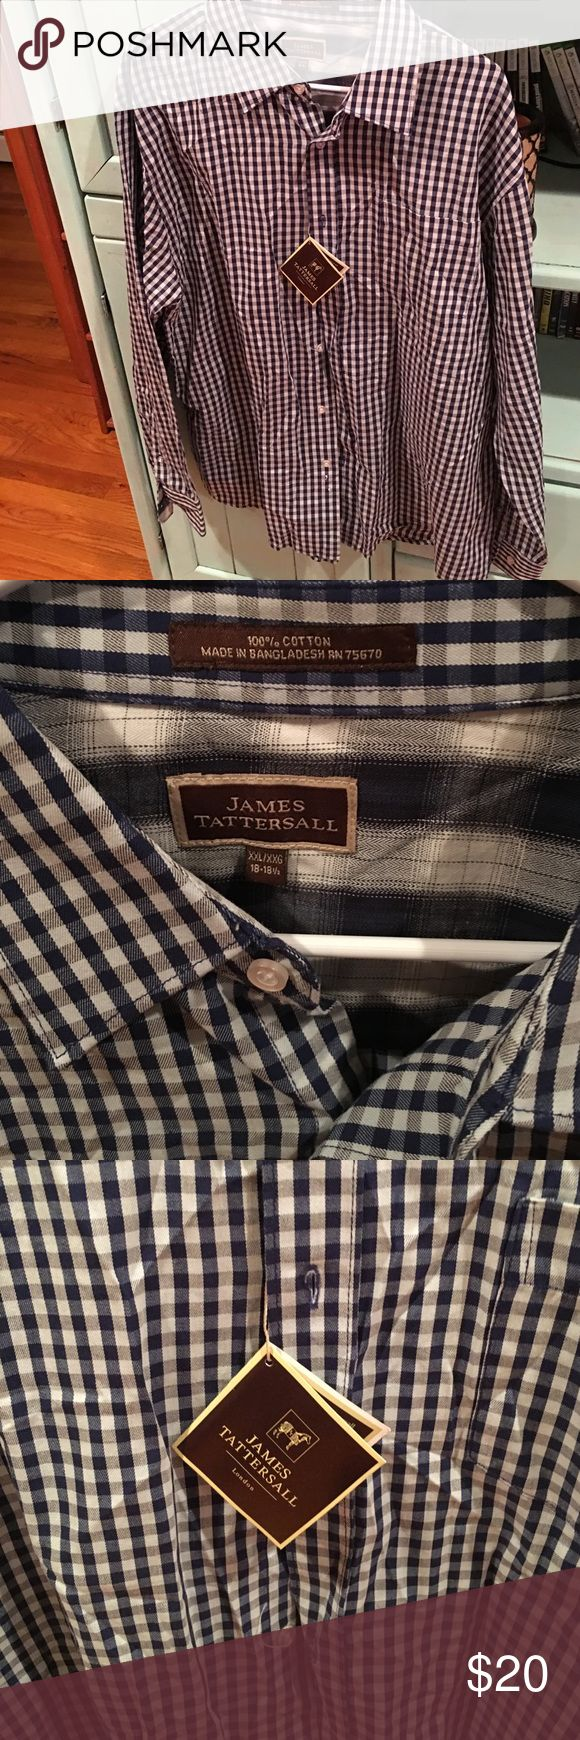 Button down Blue and white checkered long sleeve button down, NWT perfect condition! james tattersall Shirts Dress Shirts